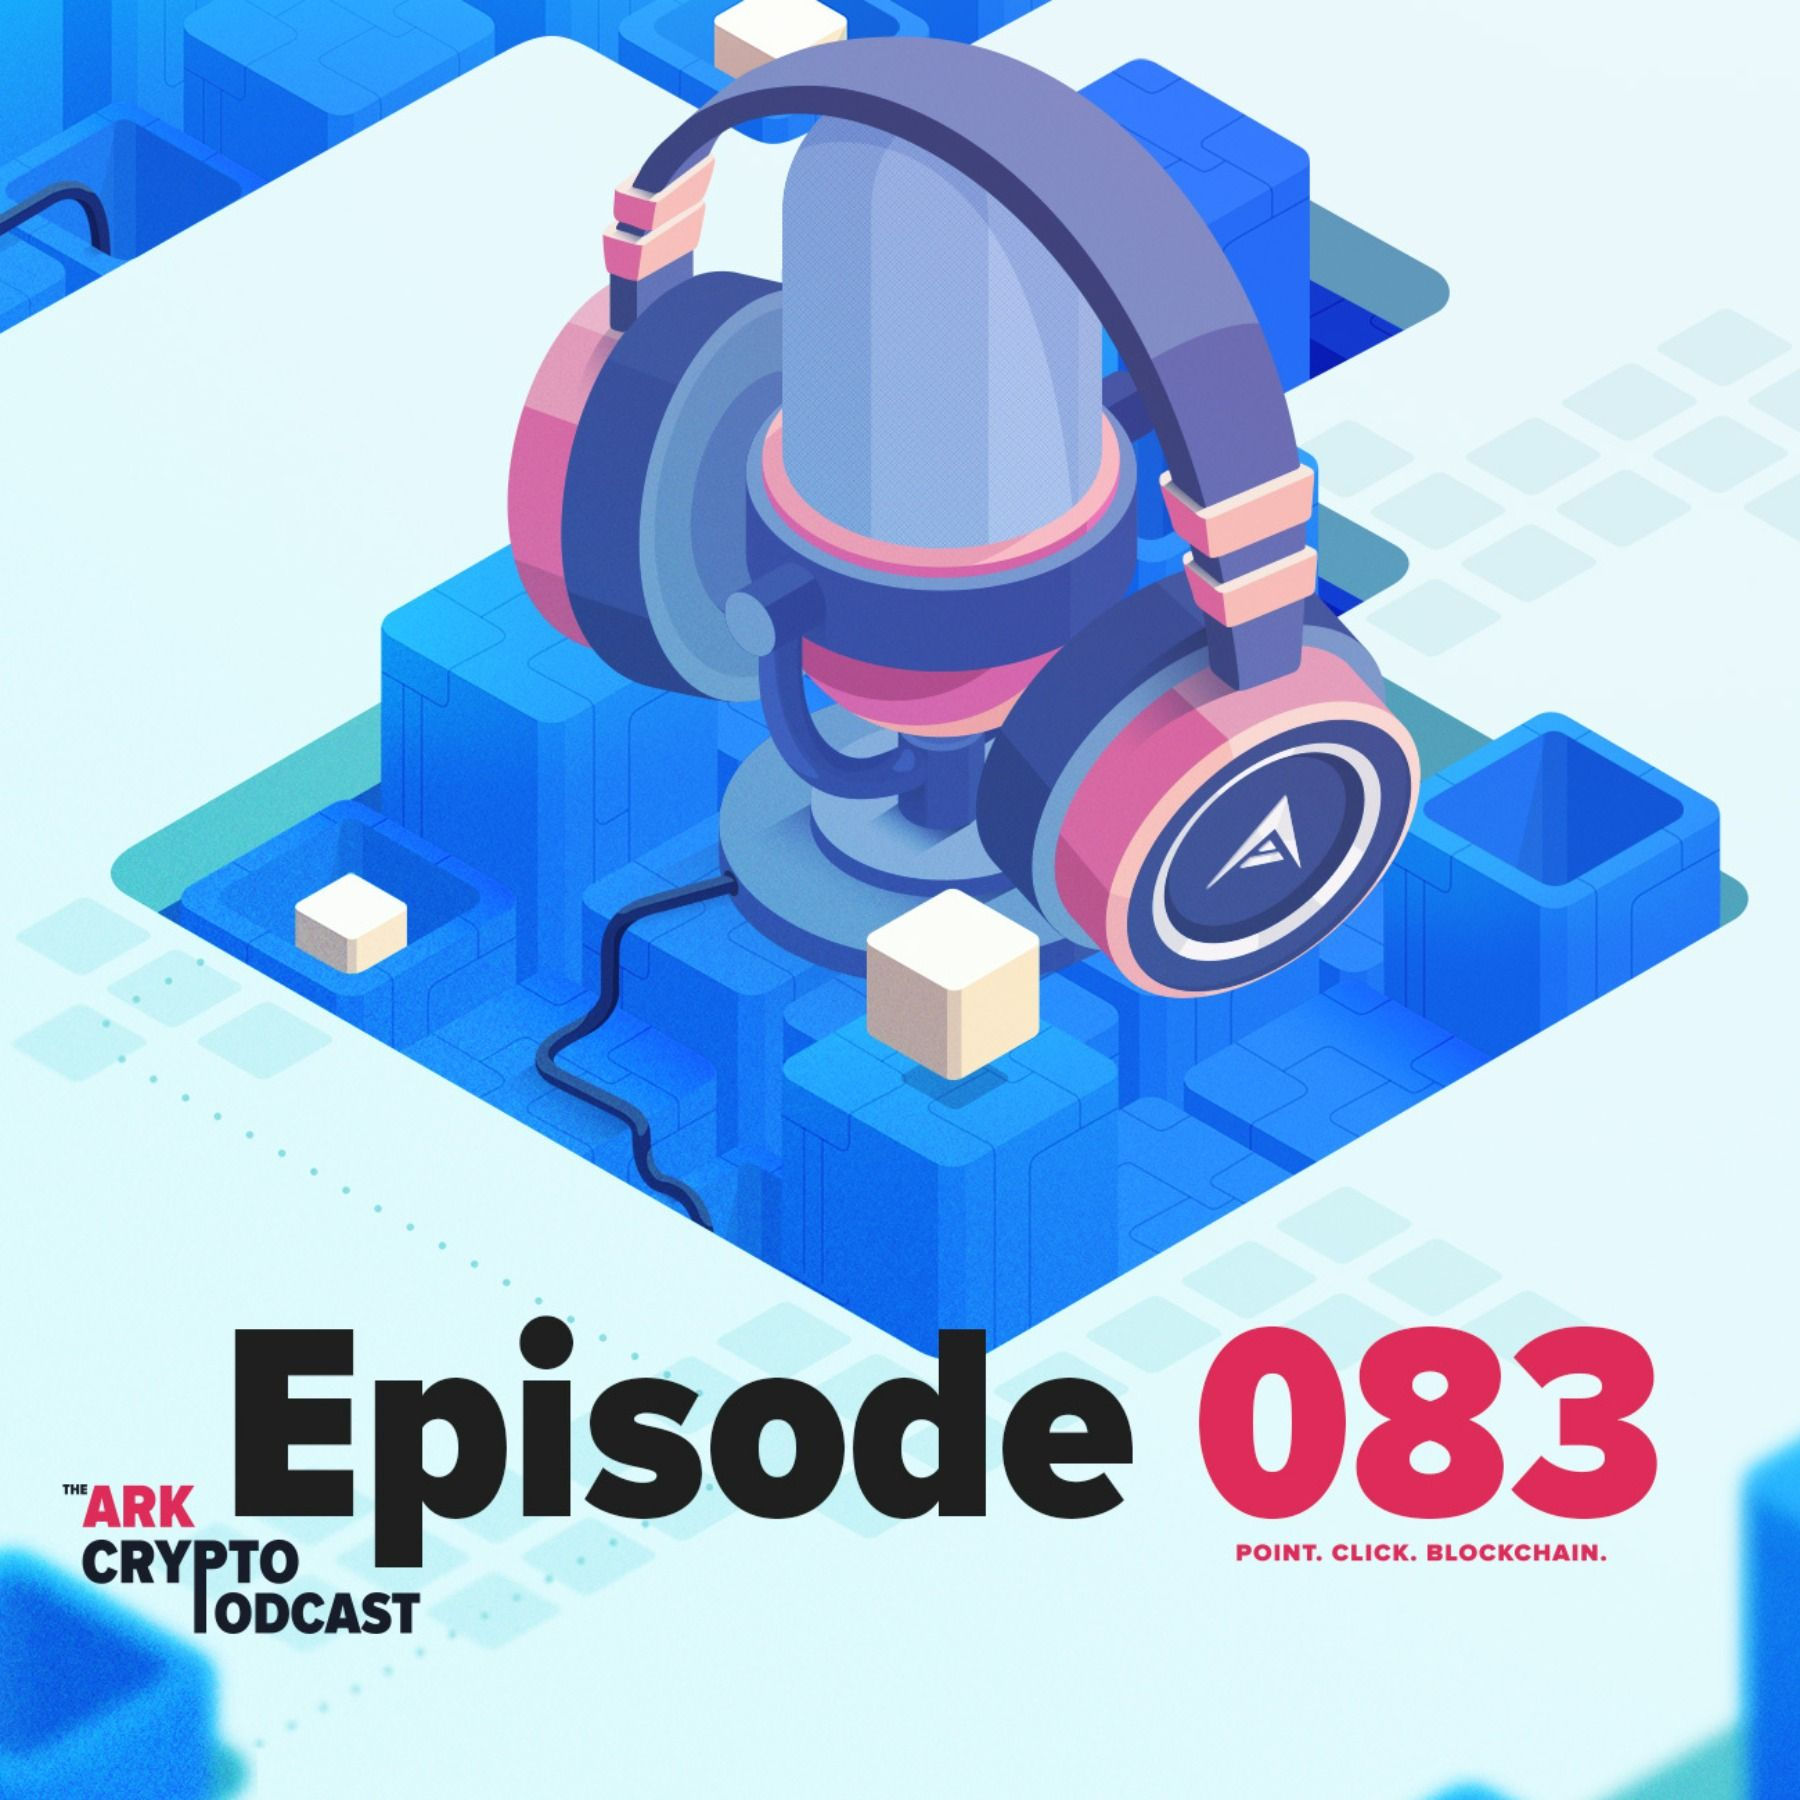 ARK Crypto Podcast #083 - MarketSquare Inside Look First Impressions YouTube Video Syndication